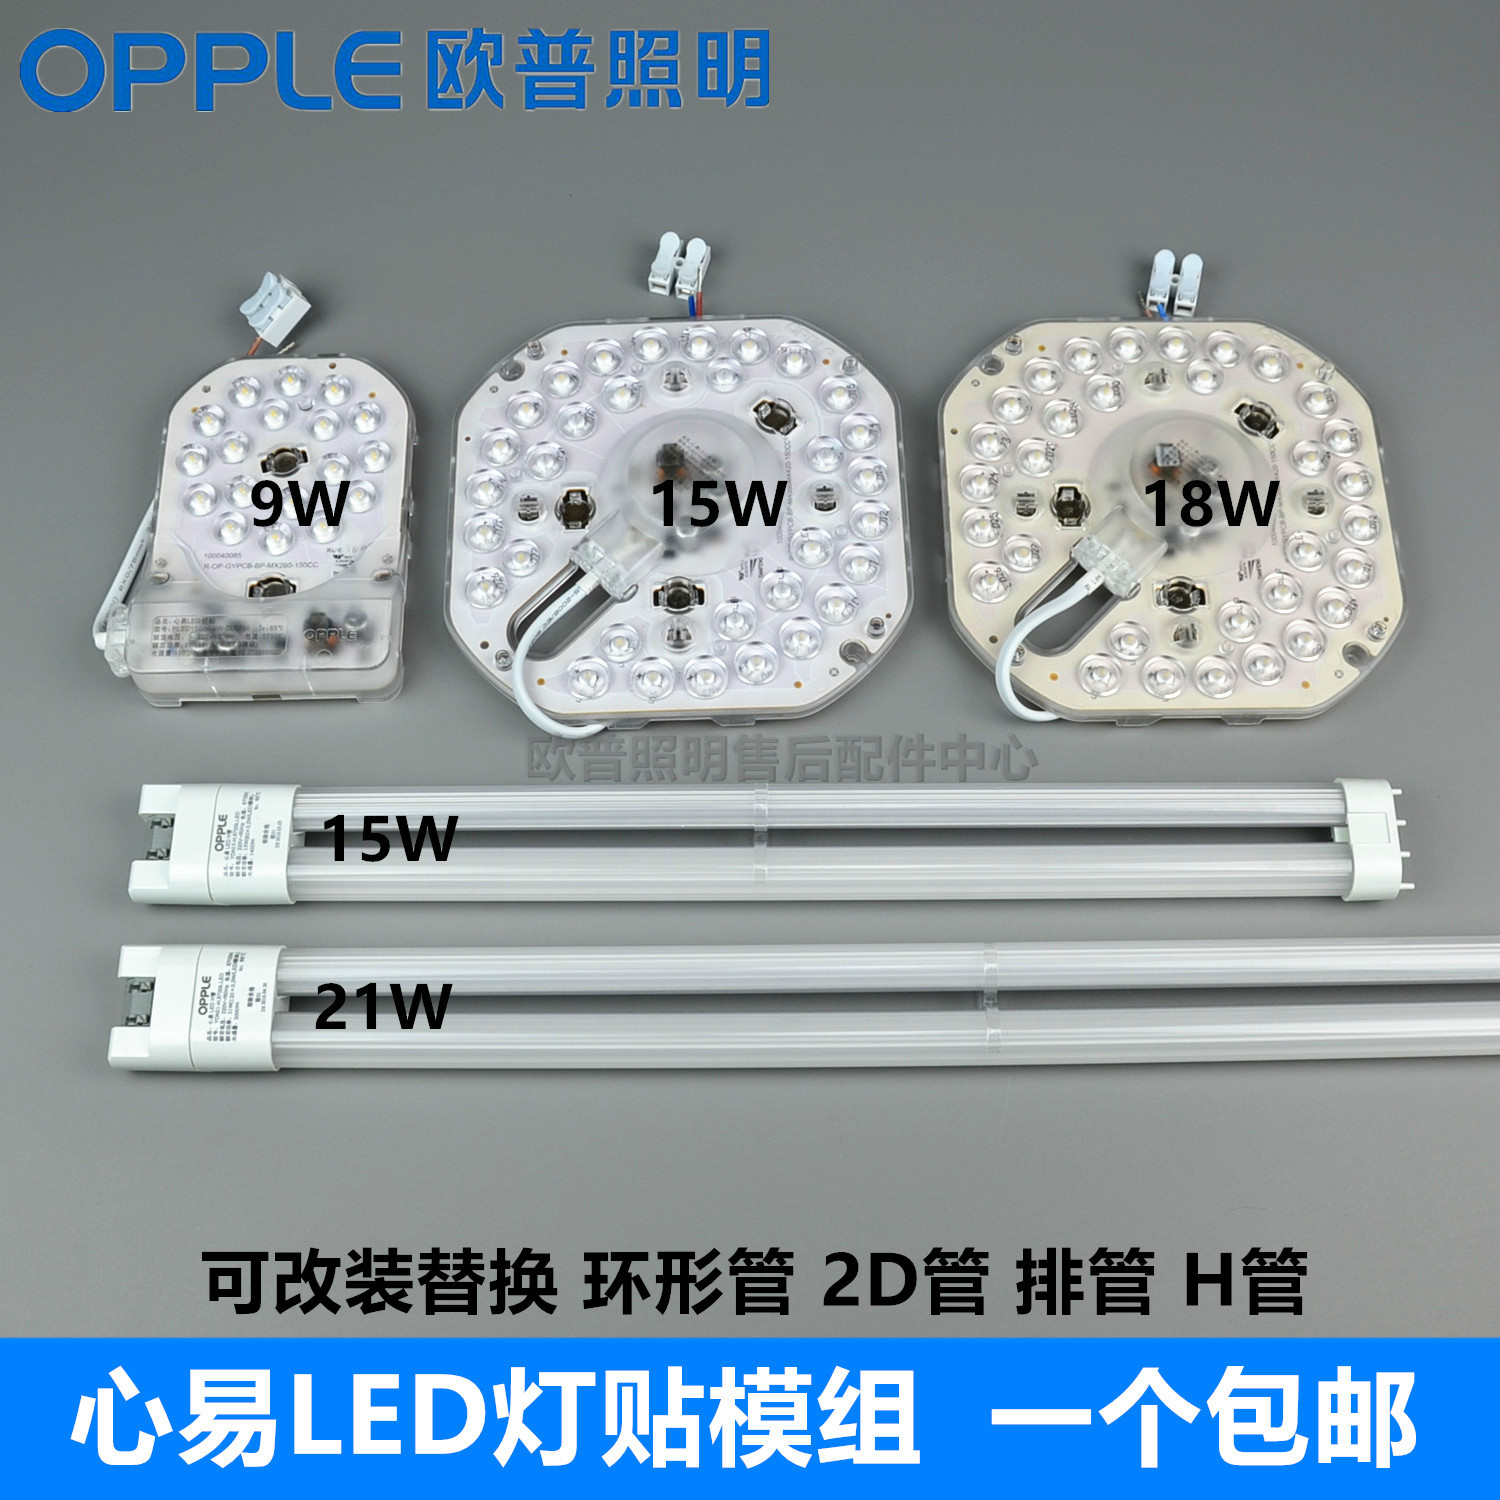 Easy Led Opple Opp Heart Easy Led Module Light Stick Ceiling Lamp Retrofit Ring Tube 2d Tube H Tube 220v No Need Ballast